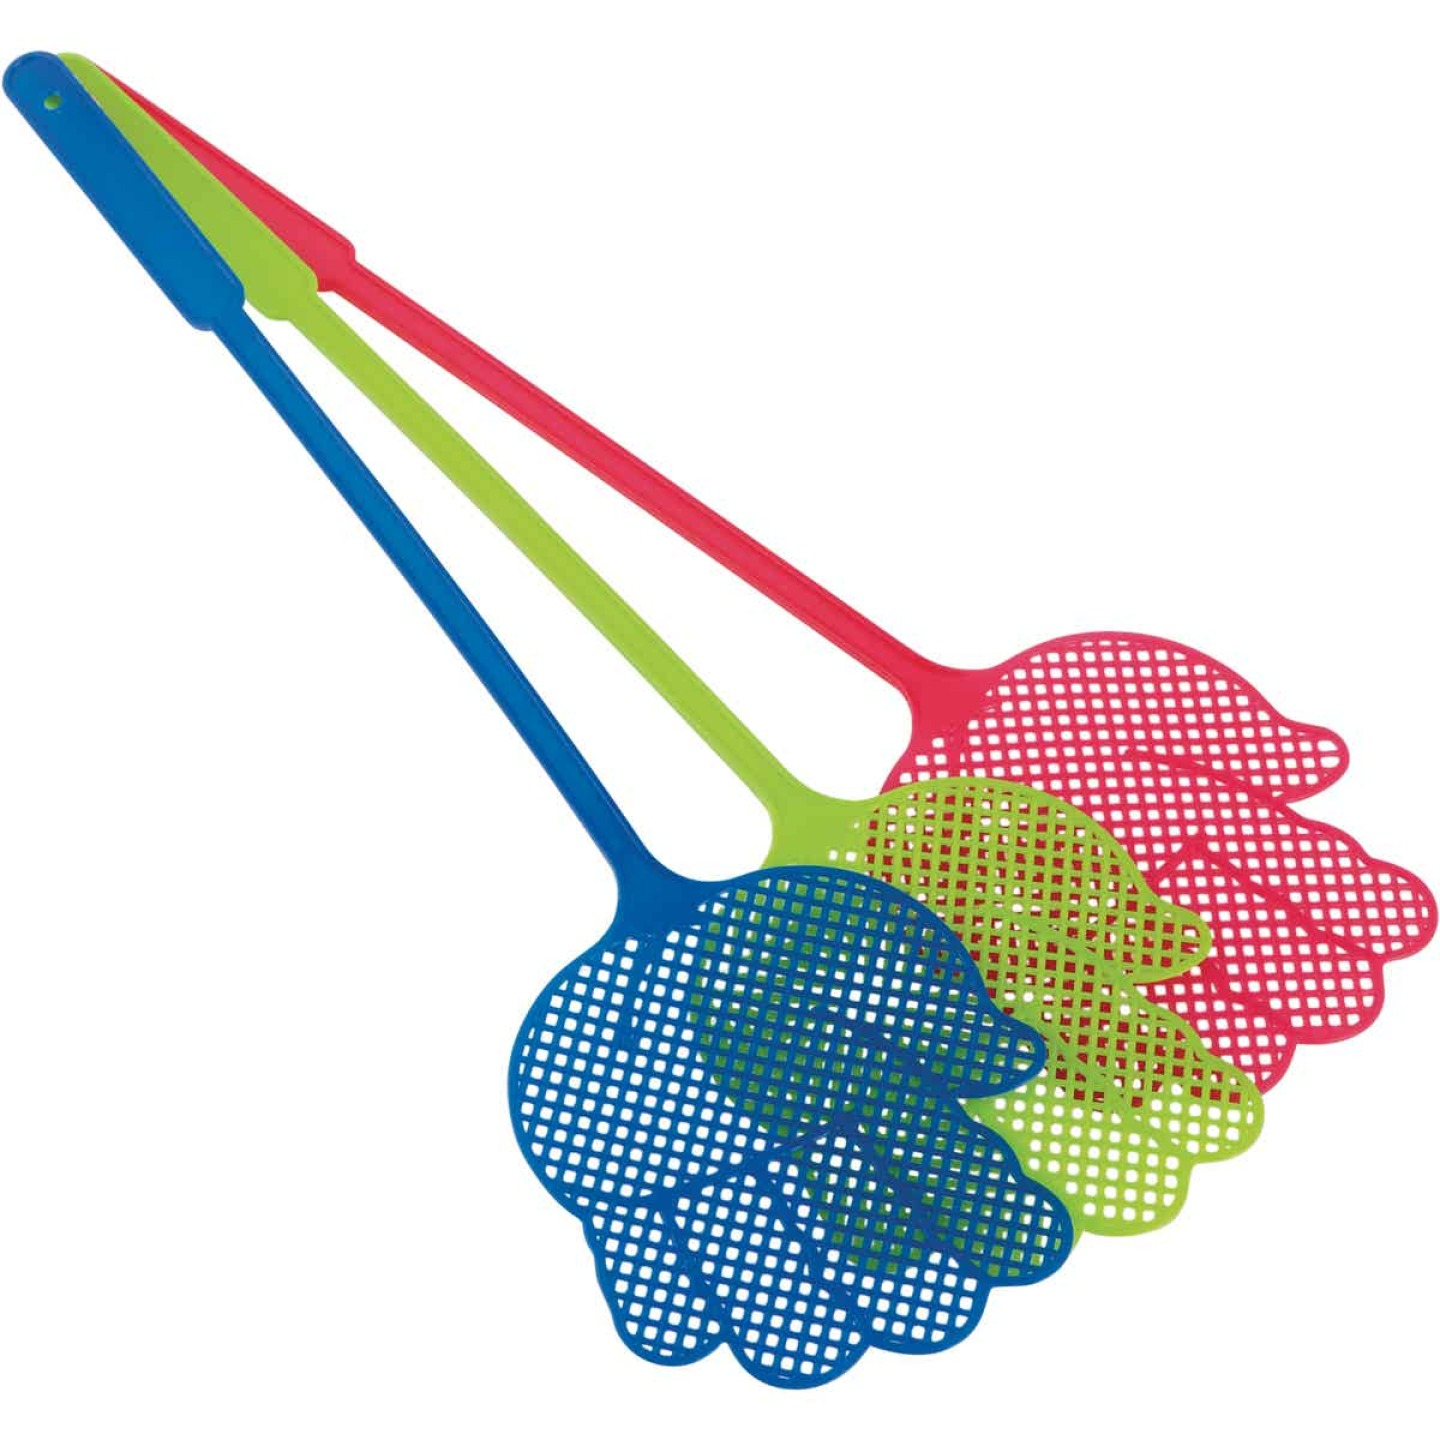 Smart Savers 5 In. x 4.7 In. Plastic Fly Swatter (3-Pack) Image 3